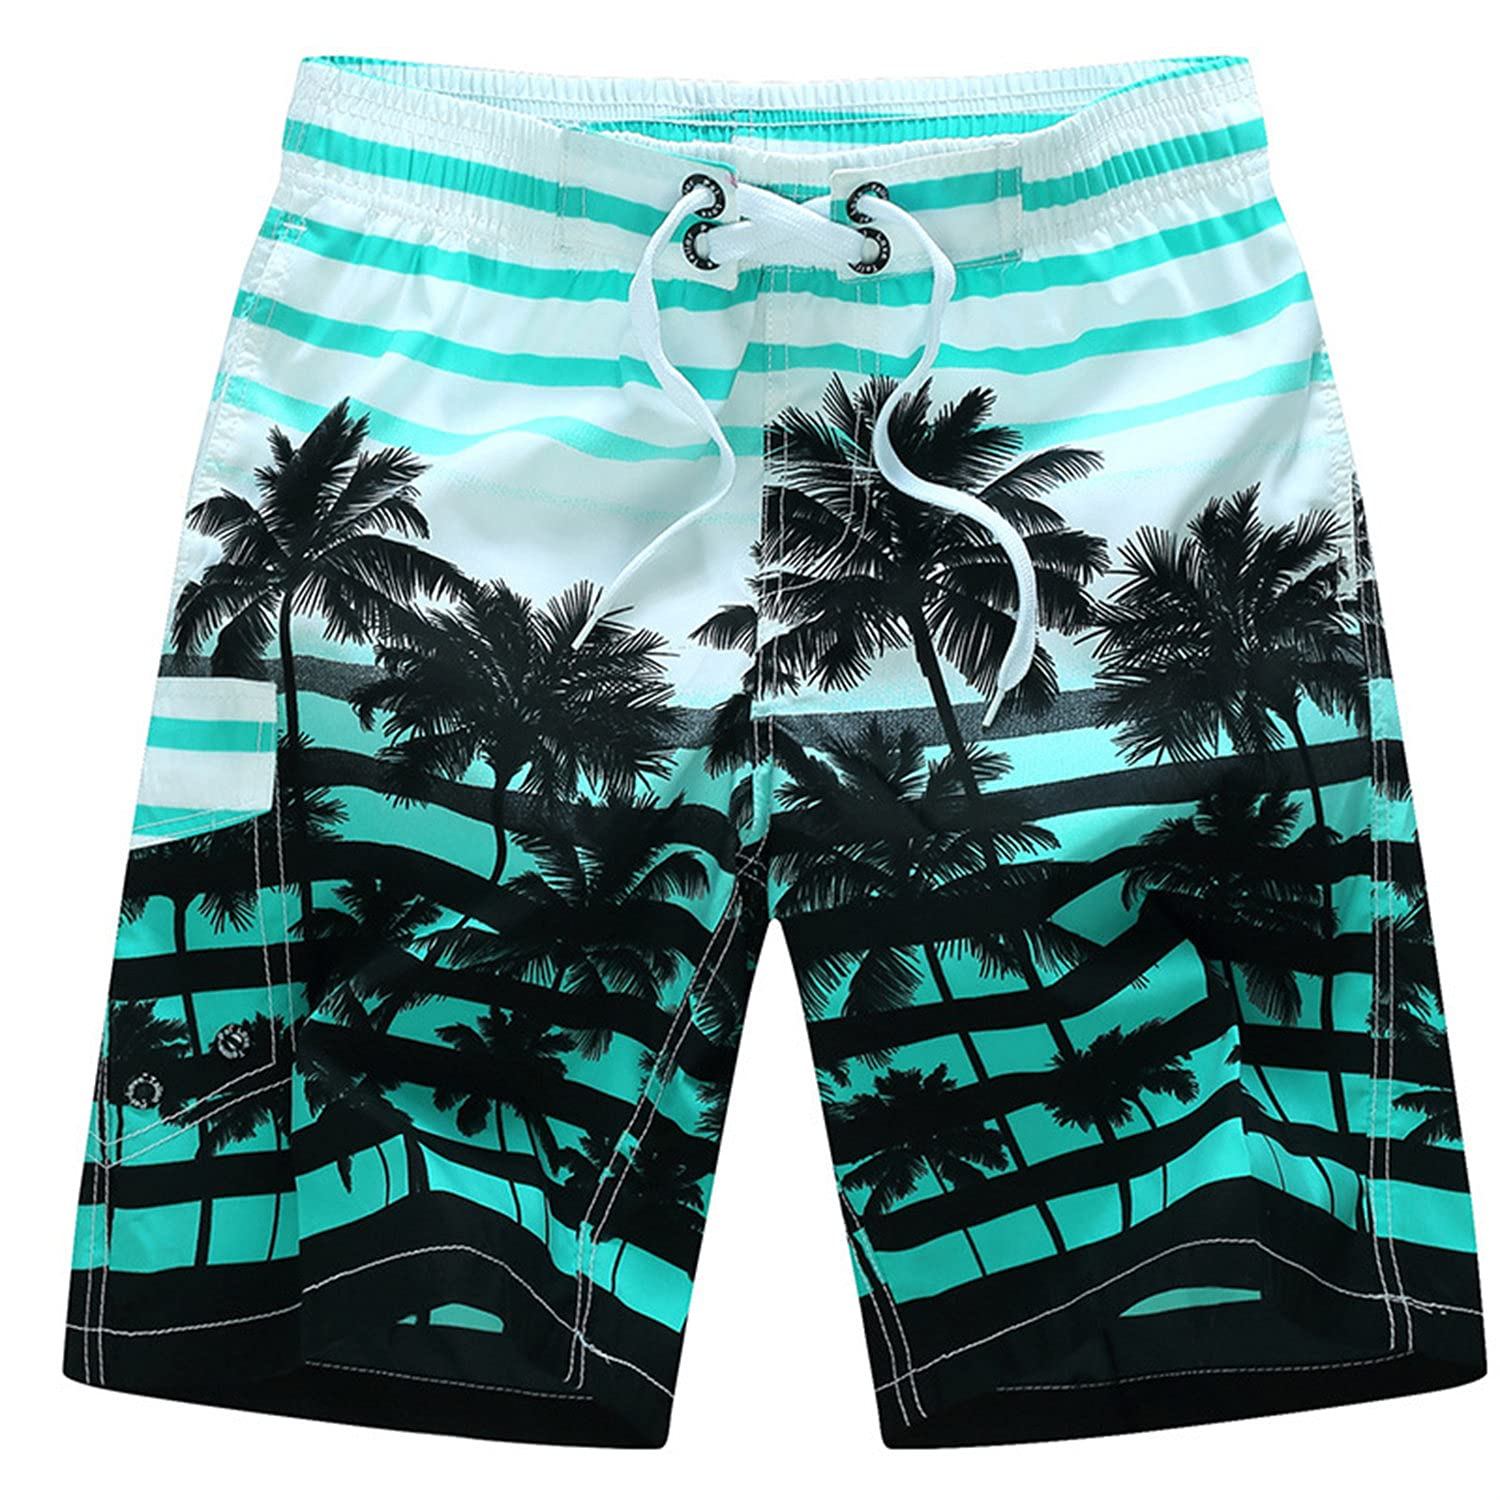 Men's Stripe Coconut Tree Short Swim Trunks Quick Dry Summer Surf Beach Board Shorts with Mesh Lining/Side Pockets (X-Large,Blue)